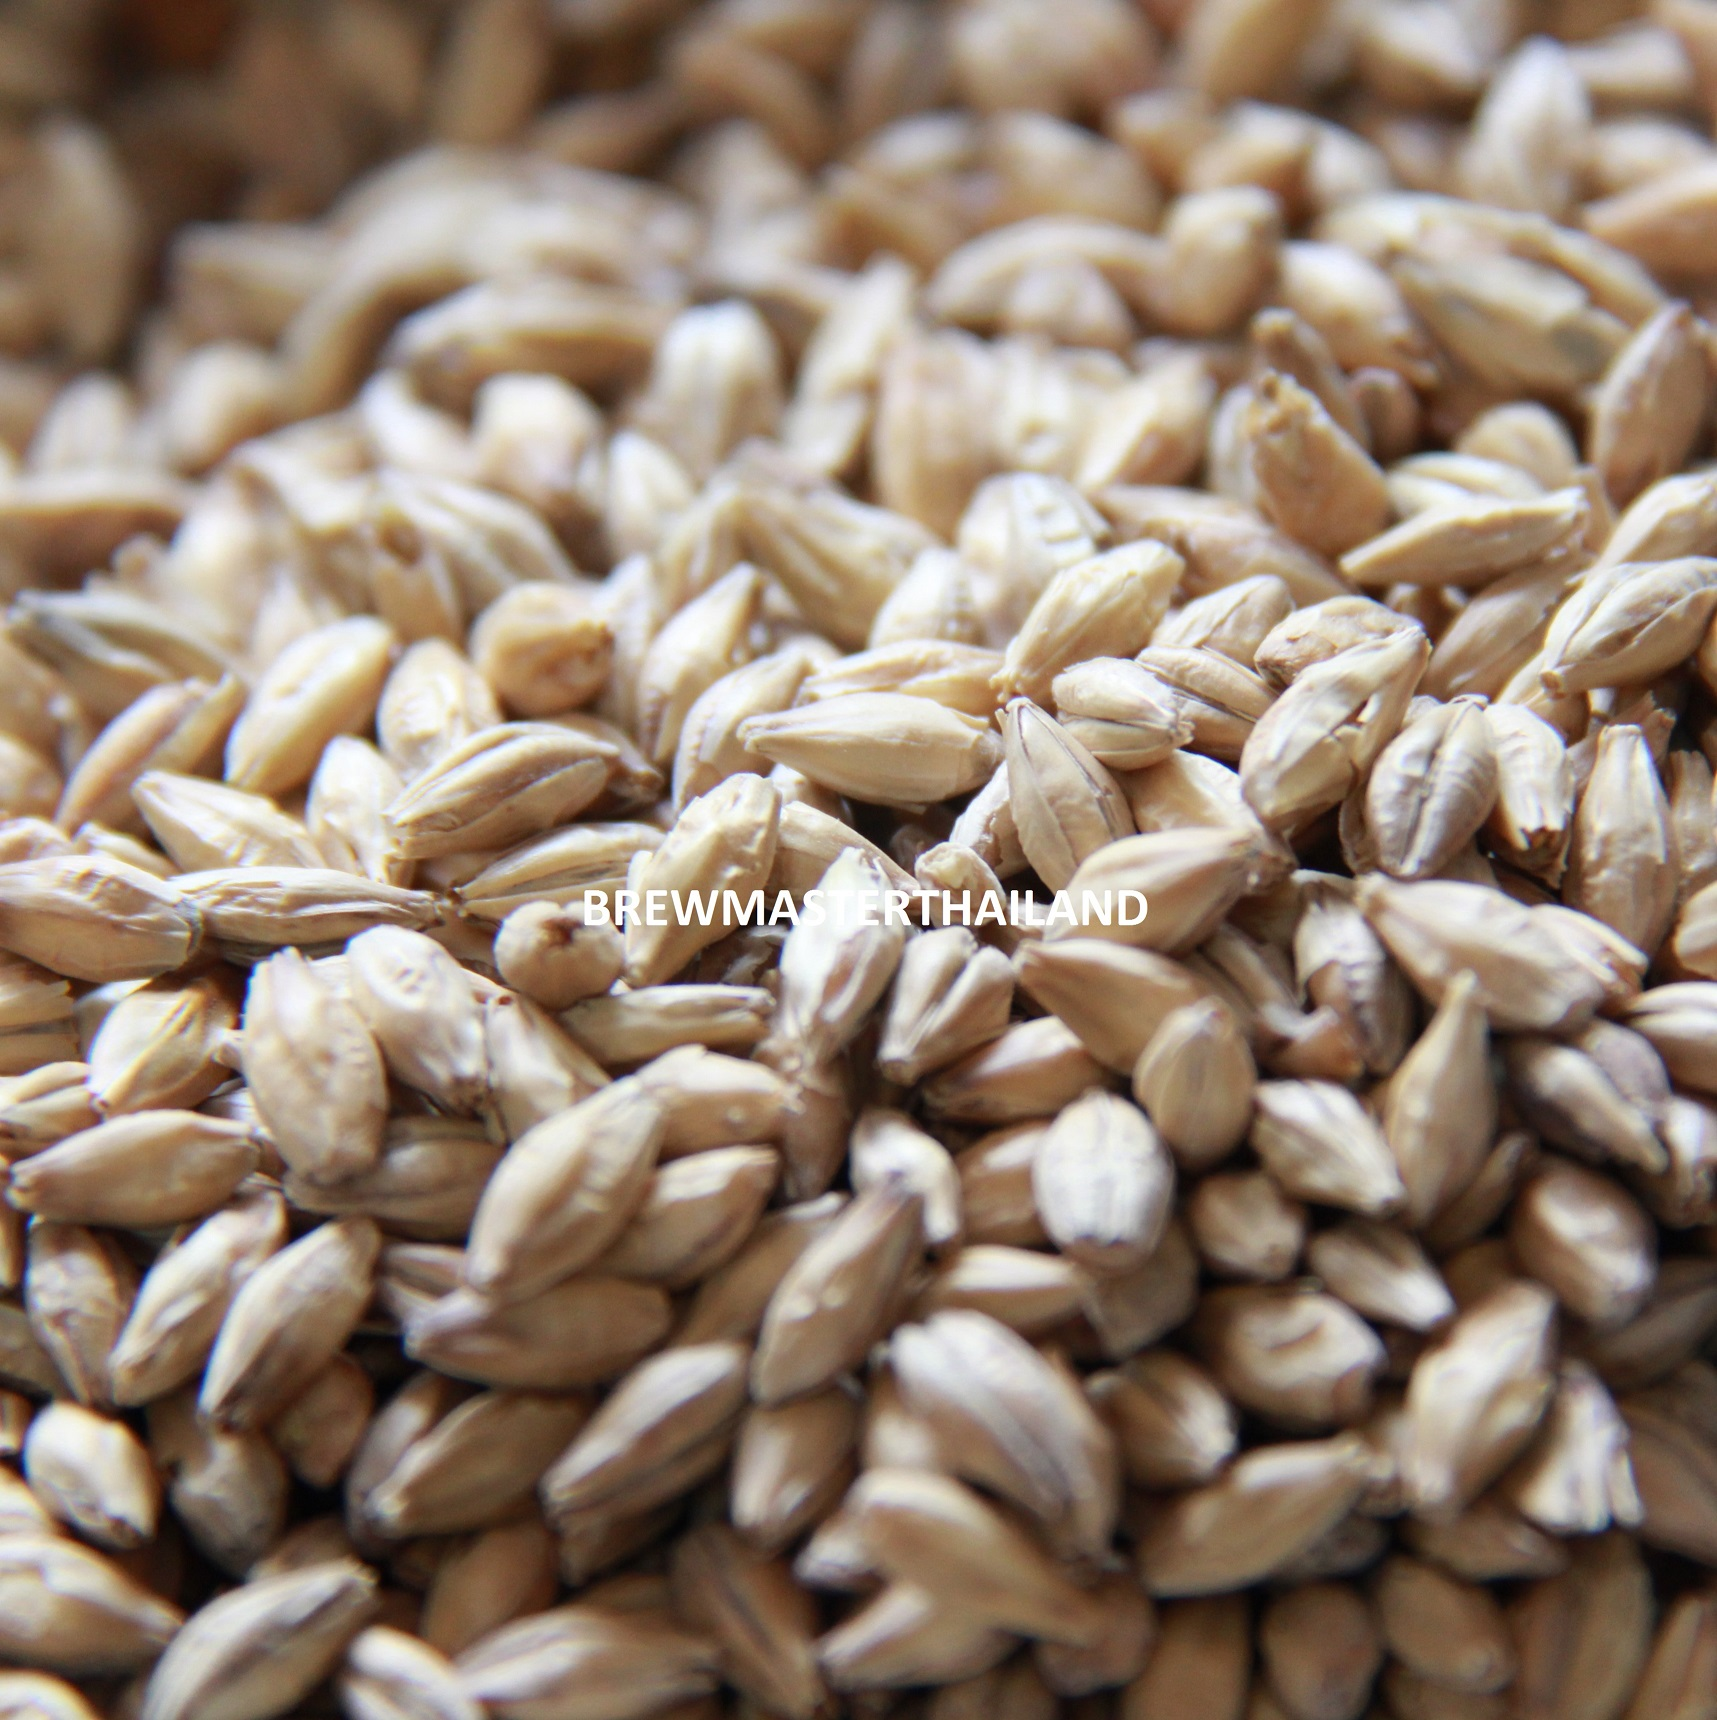 Munich Malt Type 2 - Weyermann (2 lbs)